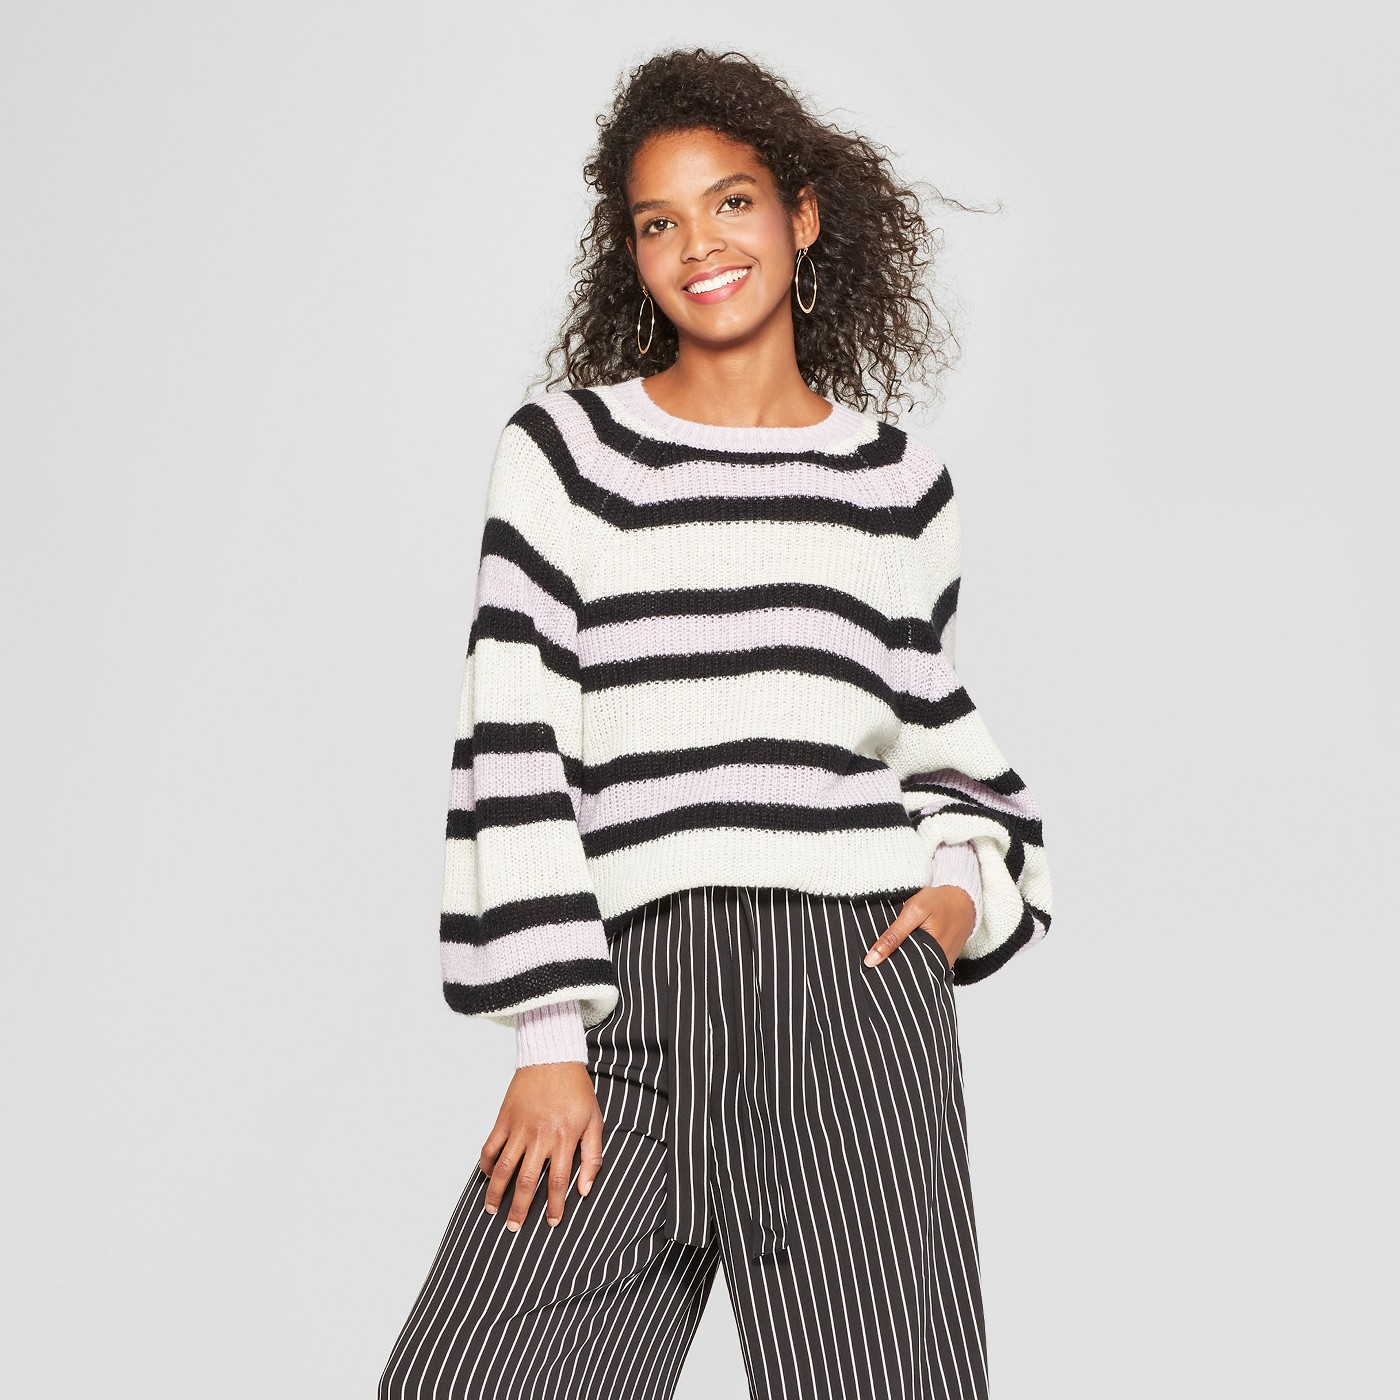 5875d1f13c4 https   www.refinery29.com en-us target-winter-clothing-2018 2018-10 ...